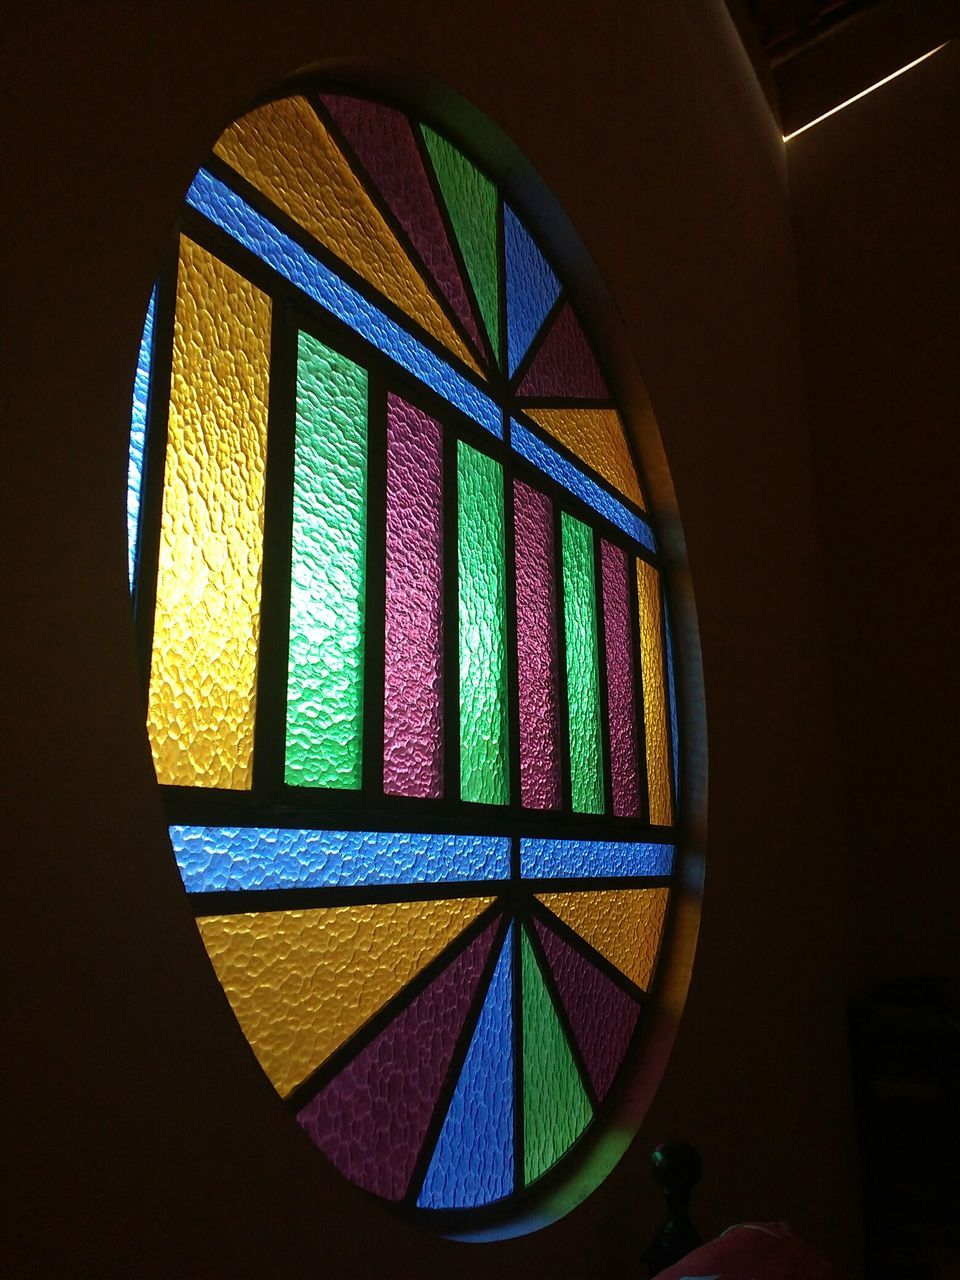 multi colored, indoors, window, illuminated, no people, architecture, close-up, day